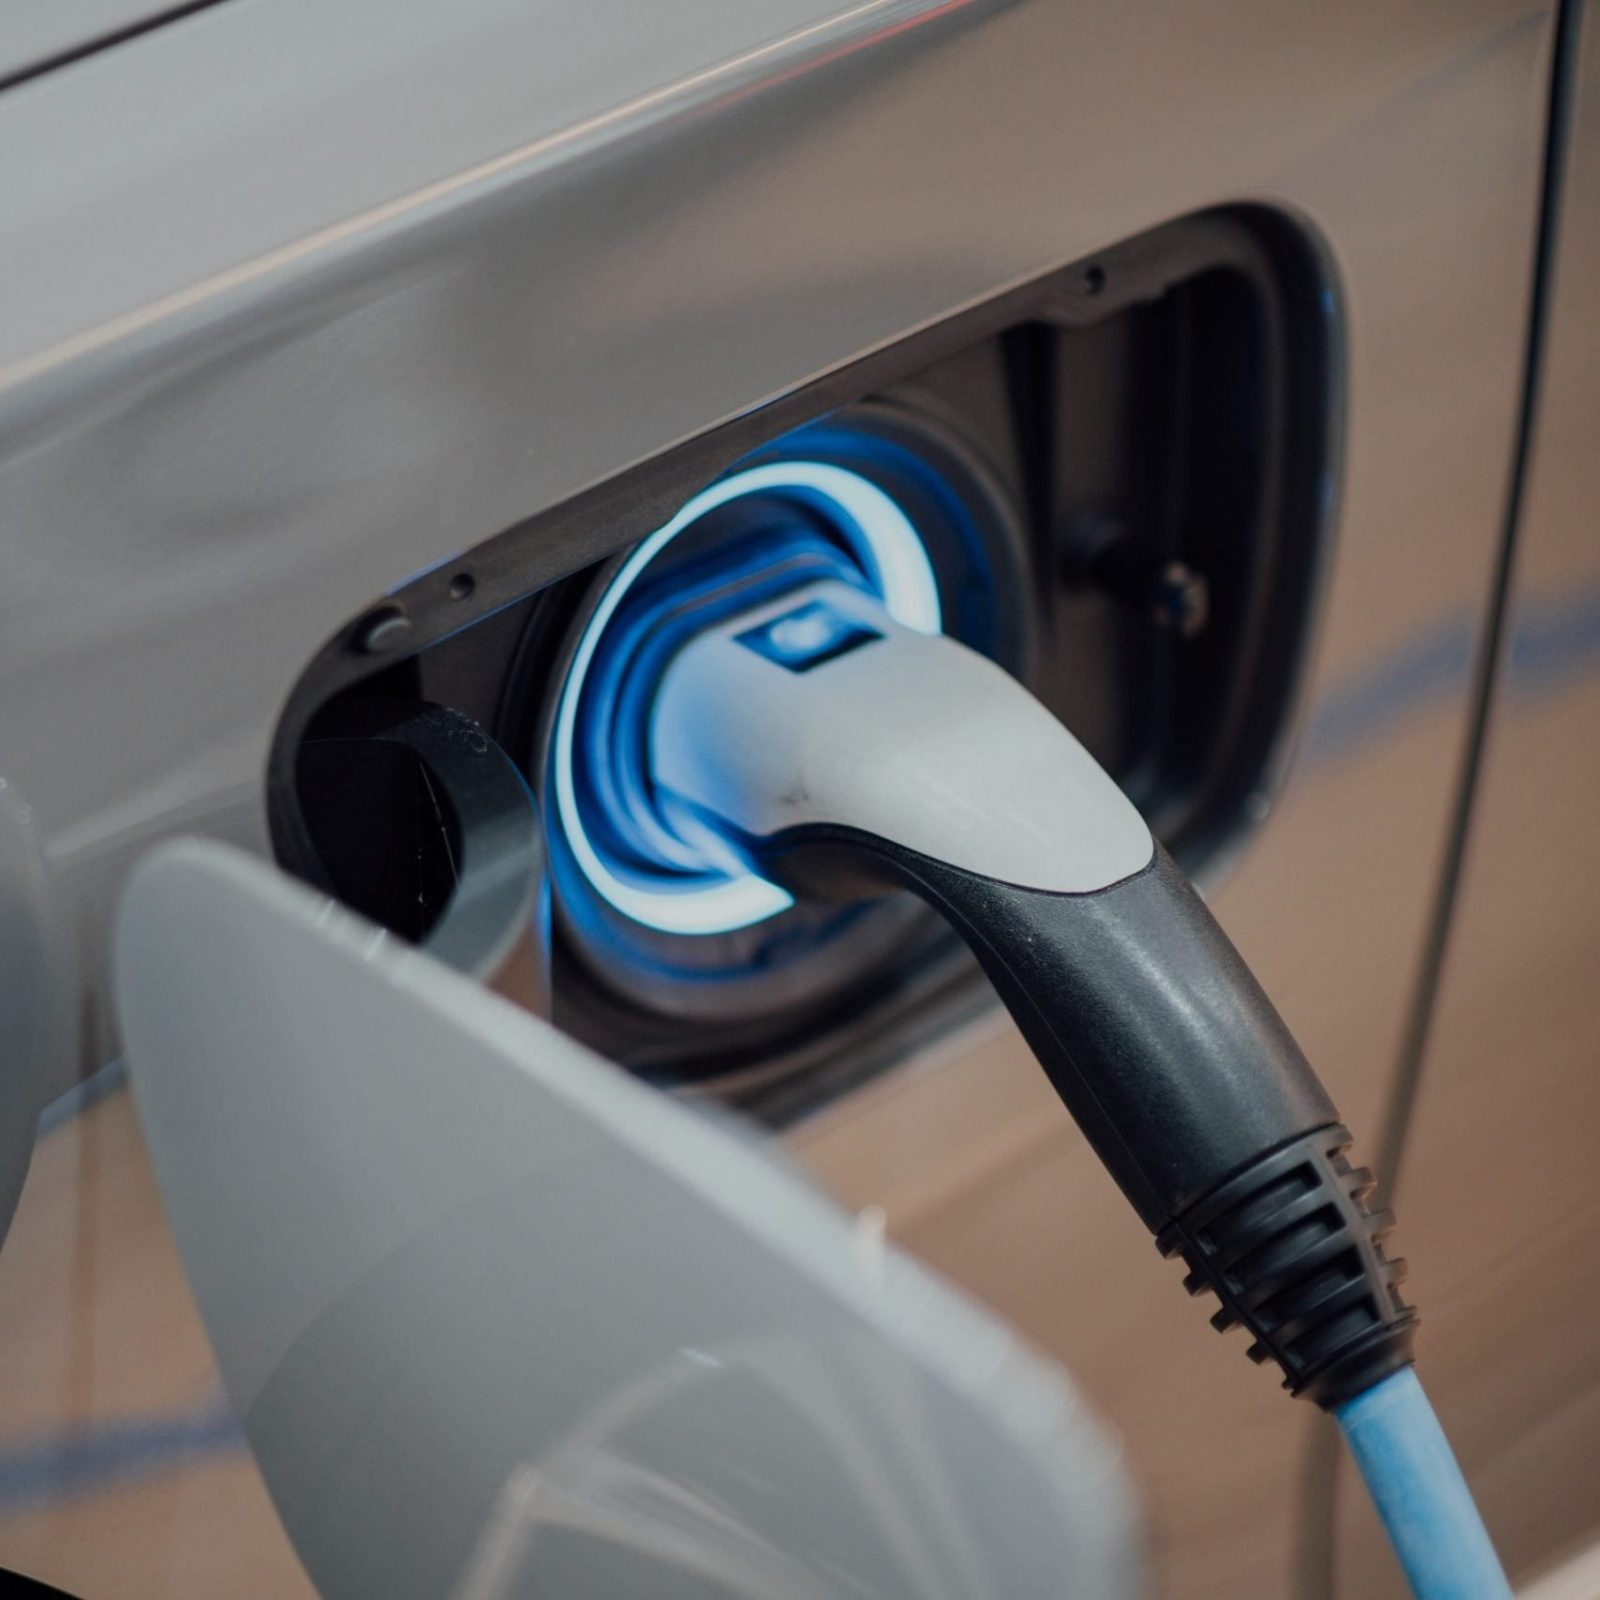 An electric car charger plugged in and getting power.